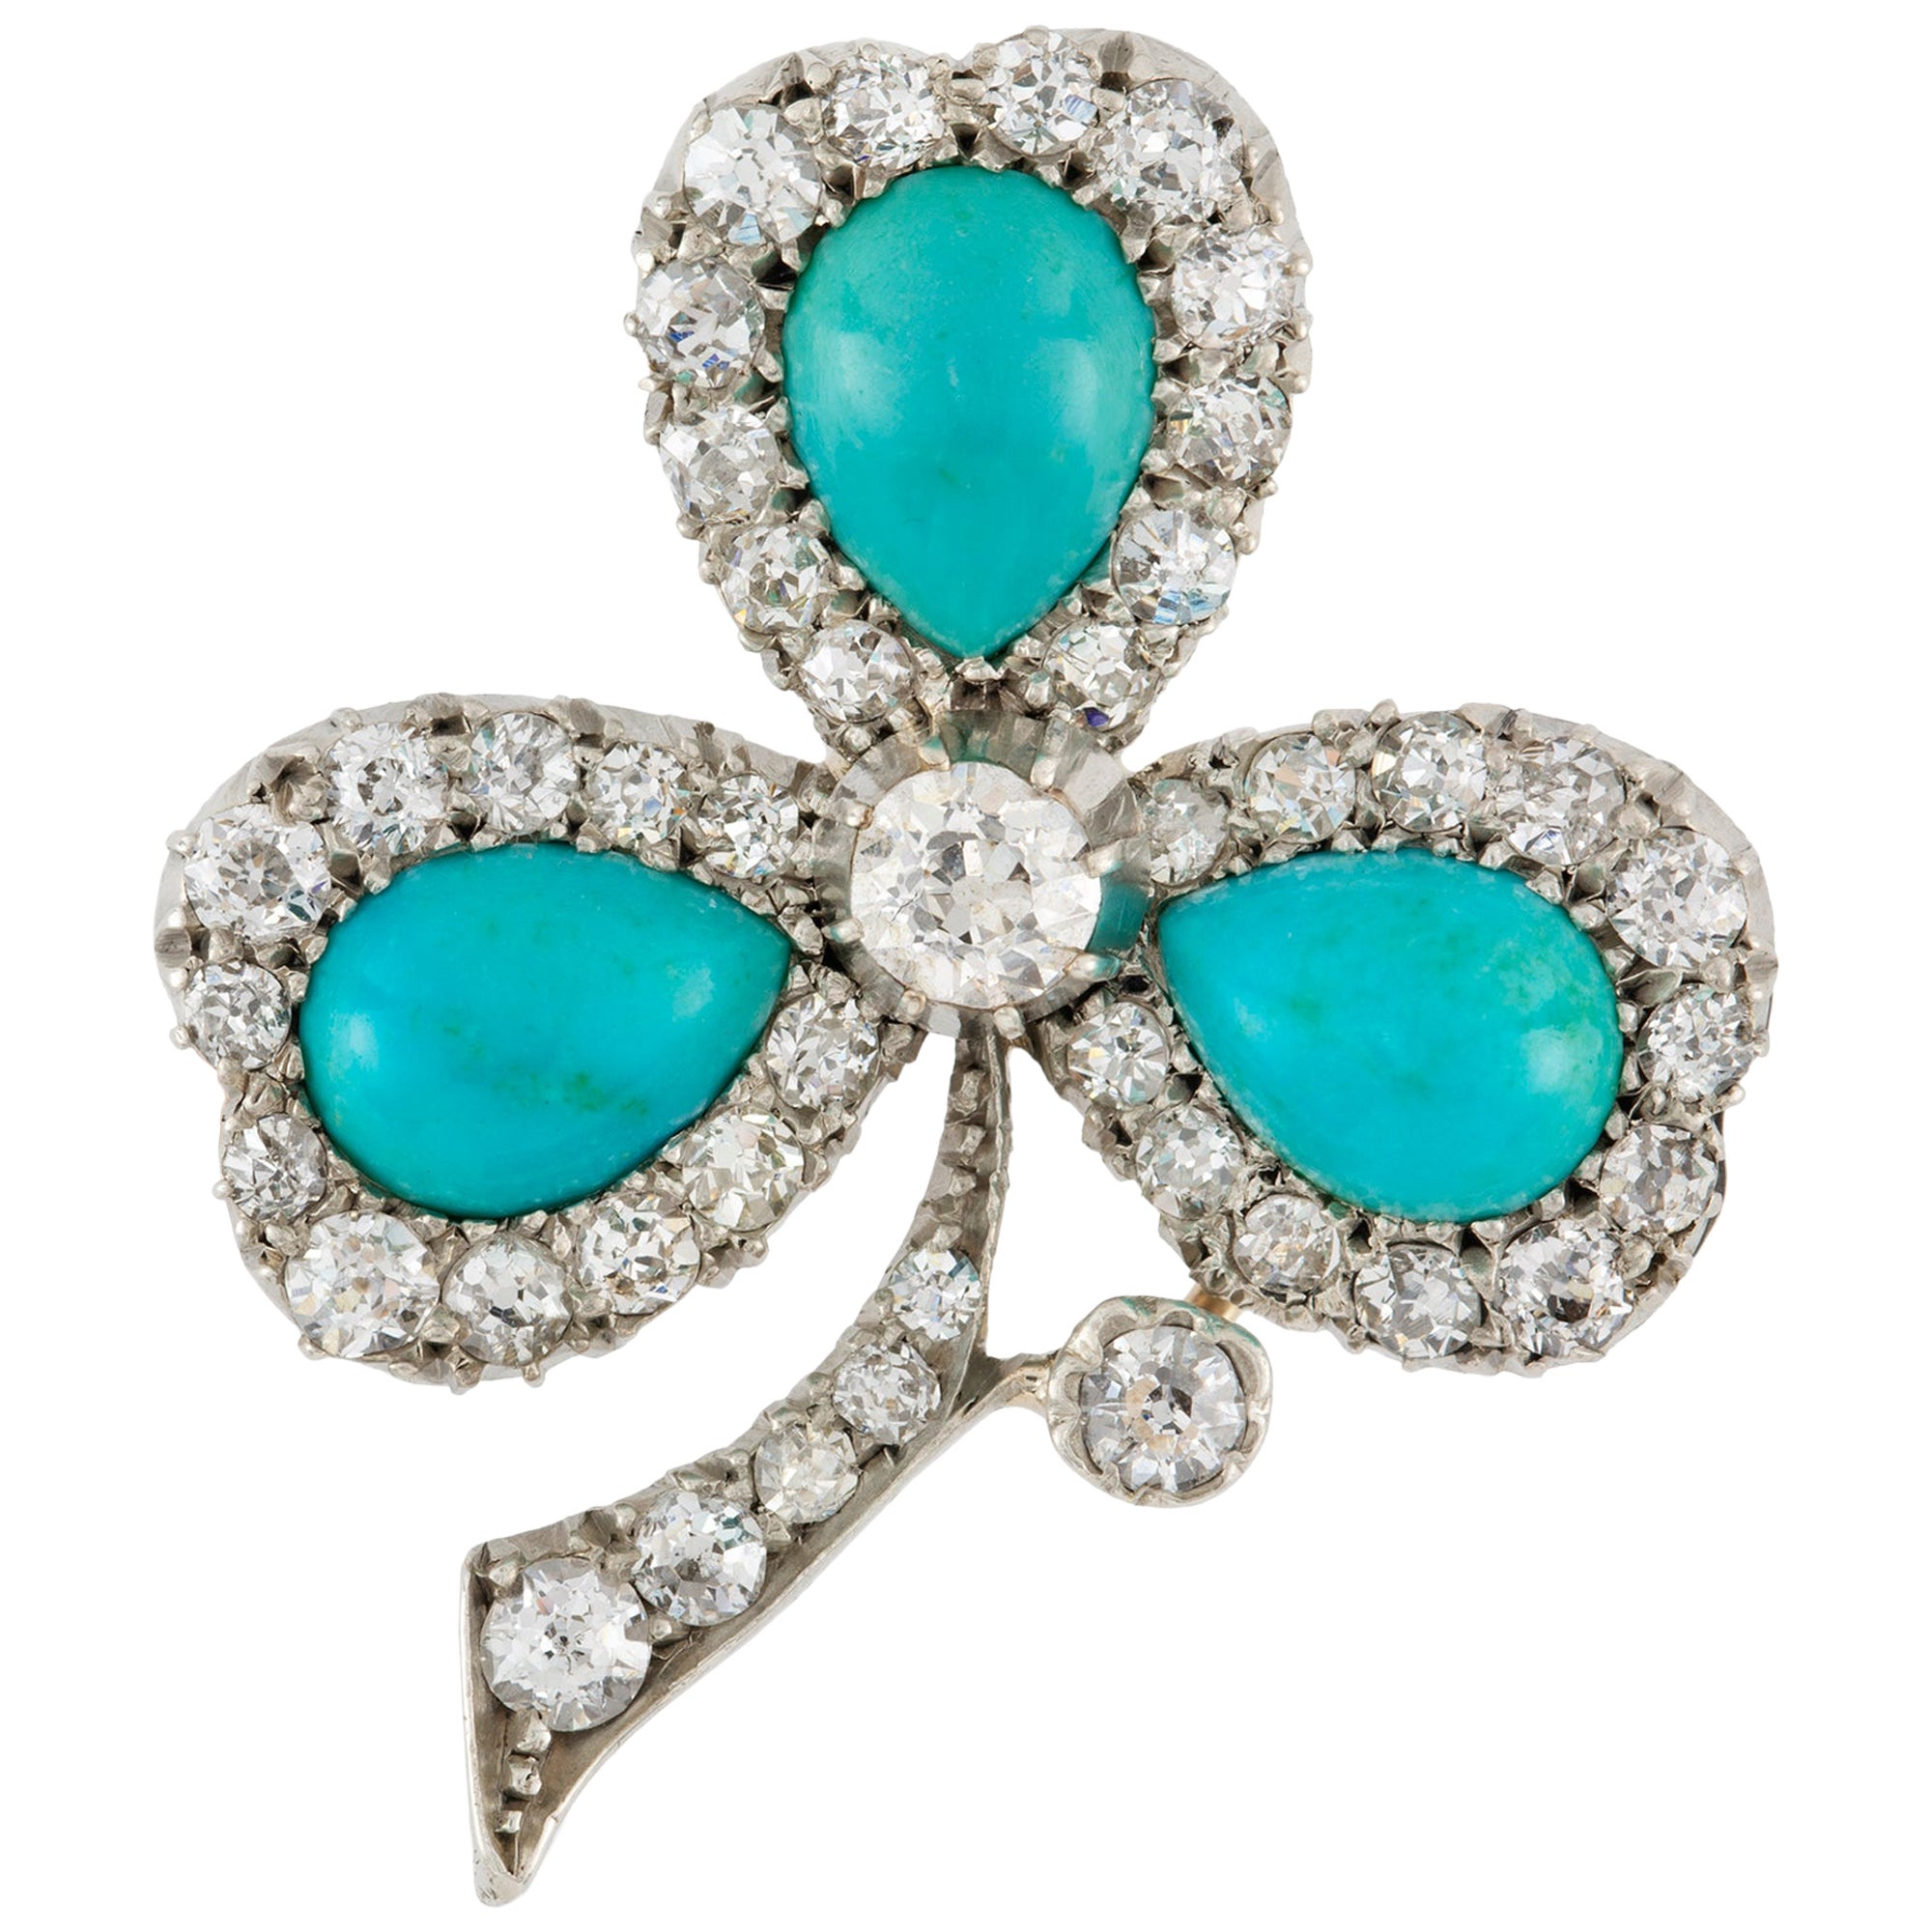 Late Victorian Turquoise and Diamond Clover Leaf Brooch